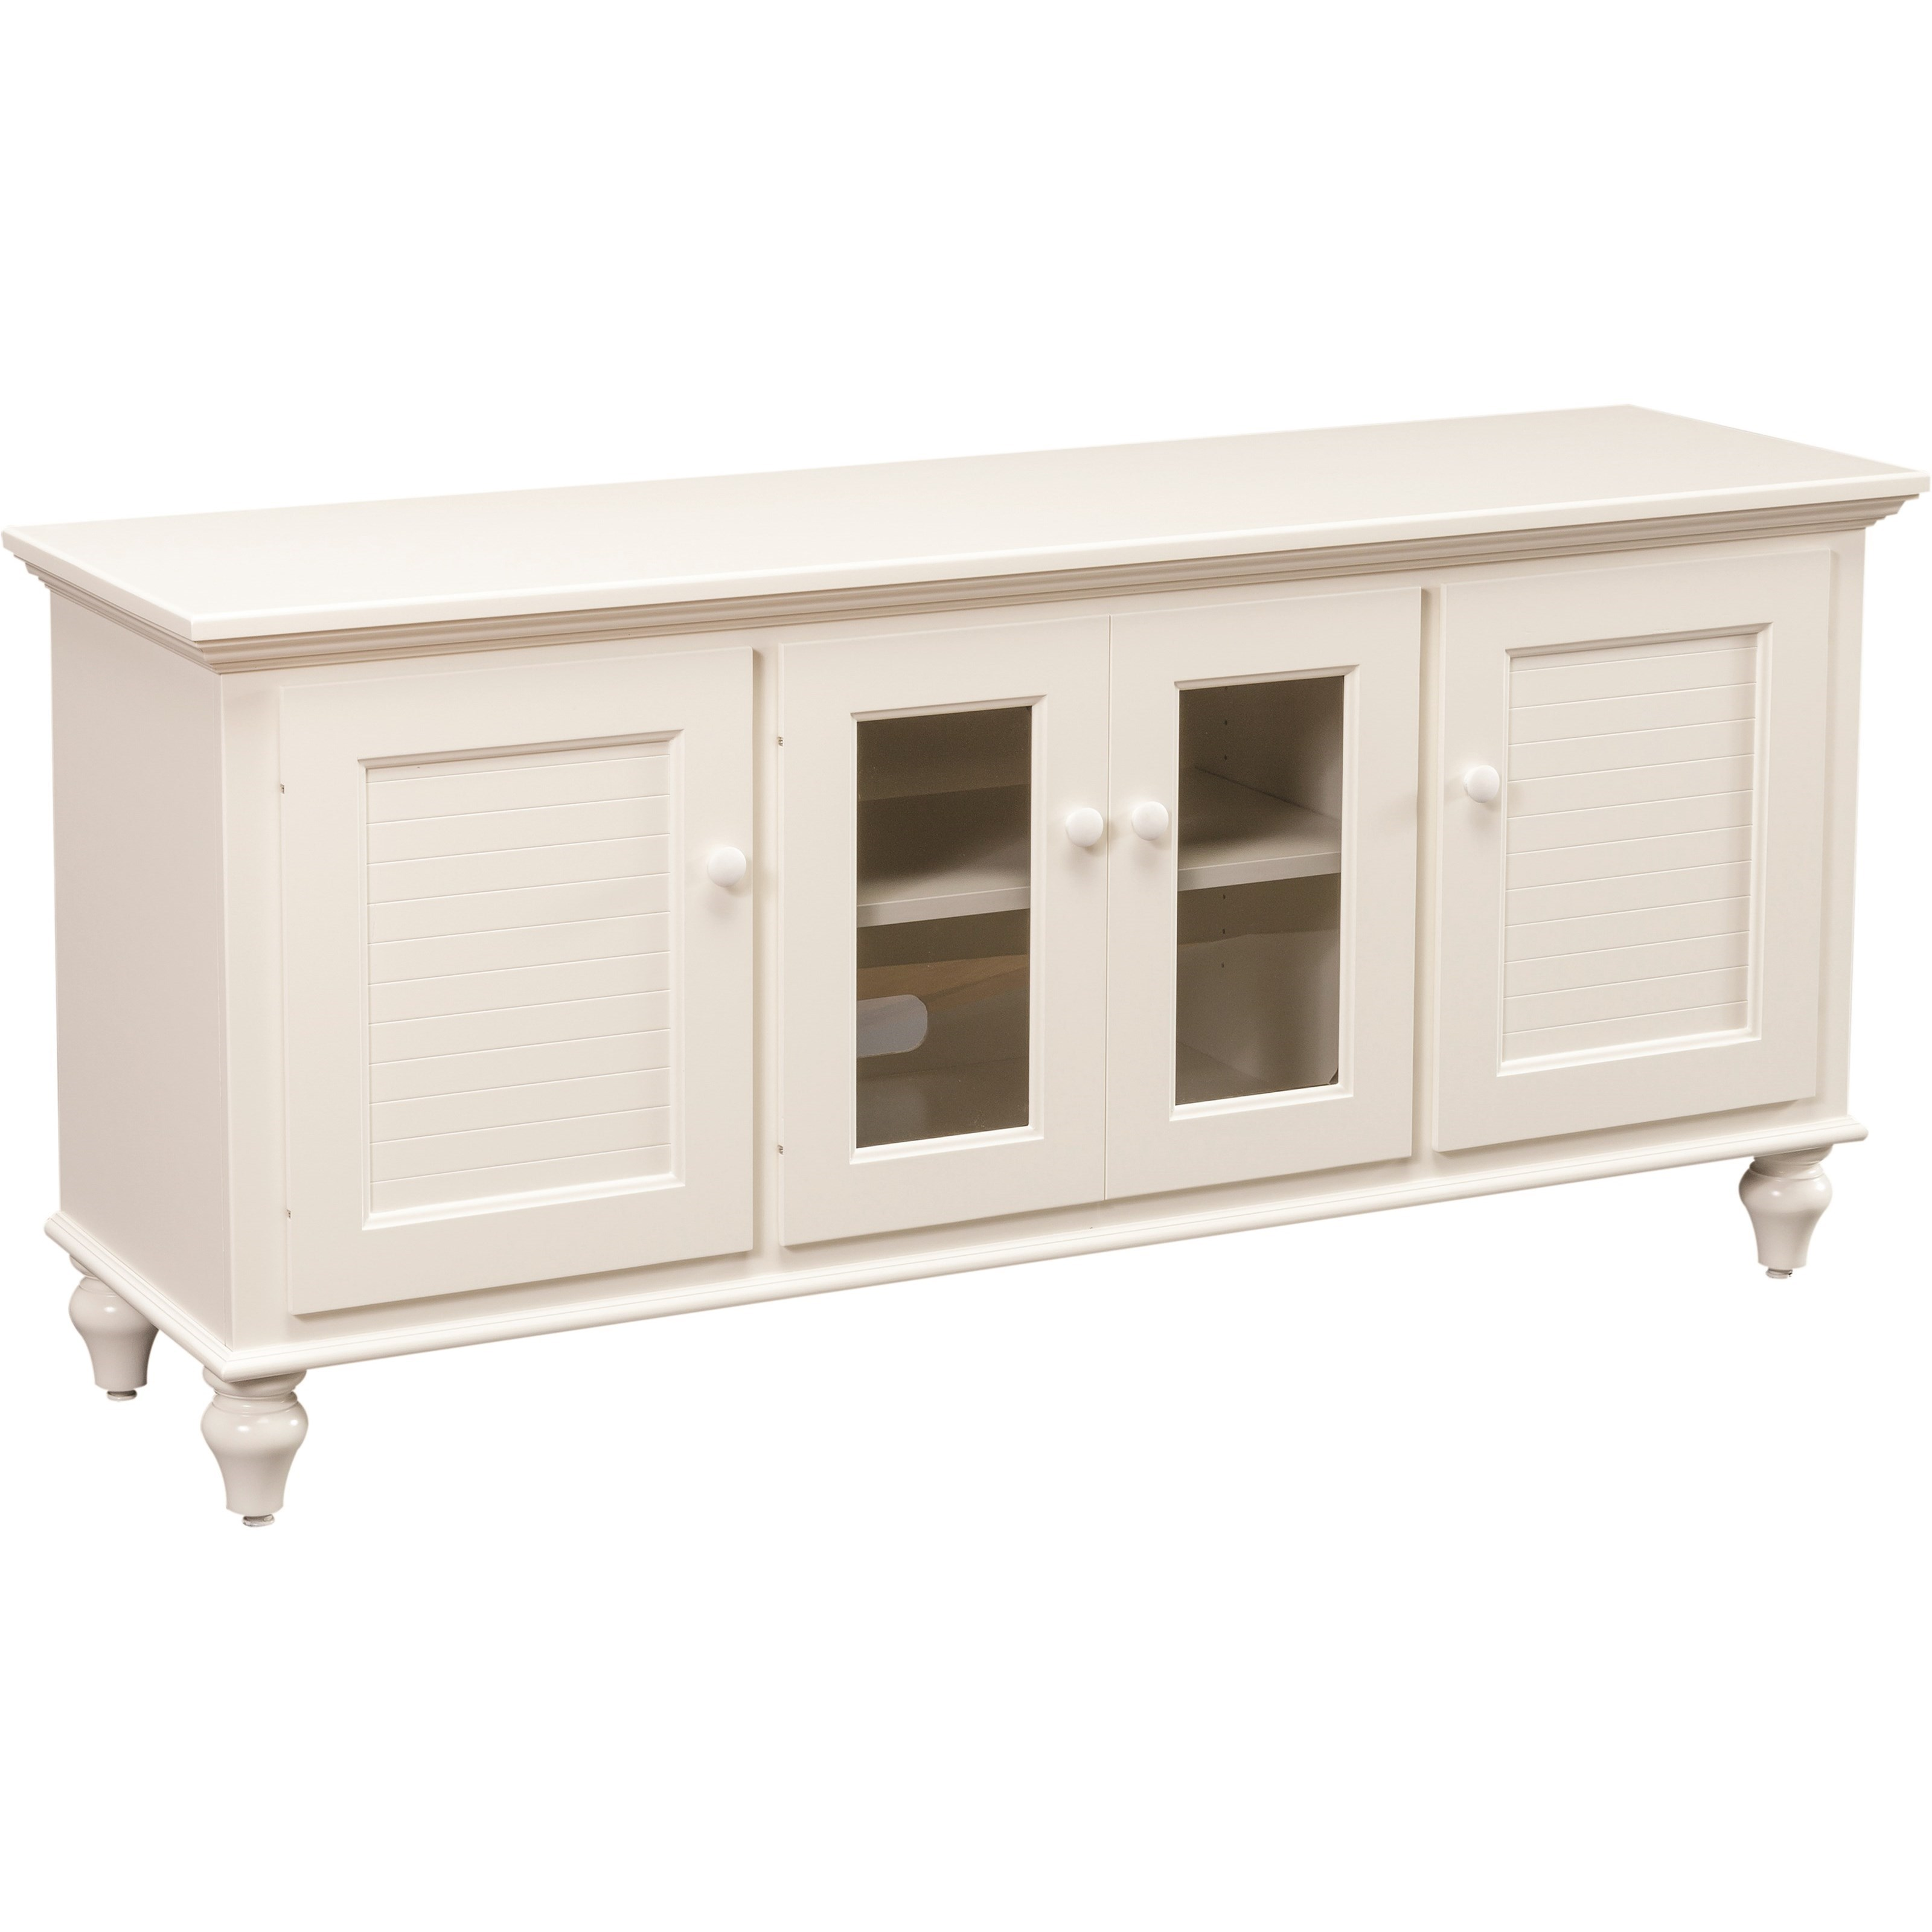 Entertainment Austin TV Stand by INTEG Wood Products at Saugerties Furniture Mart